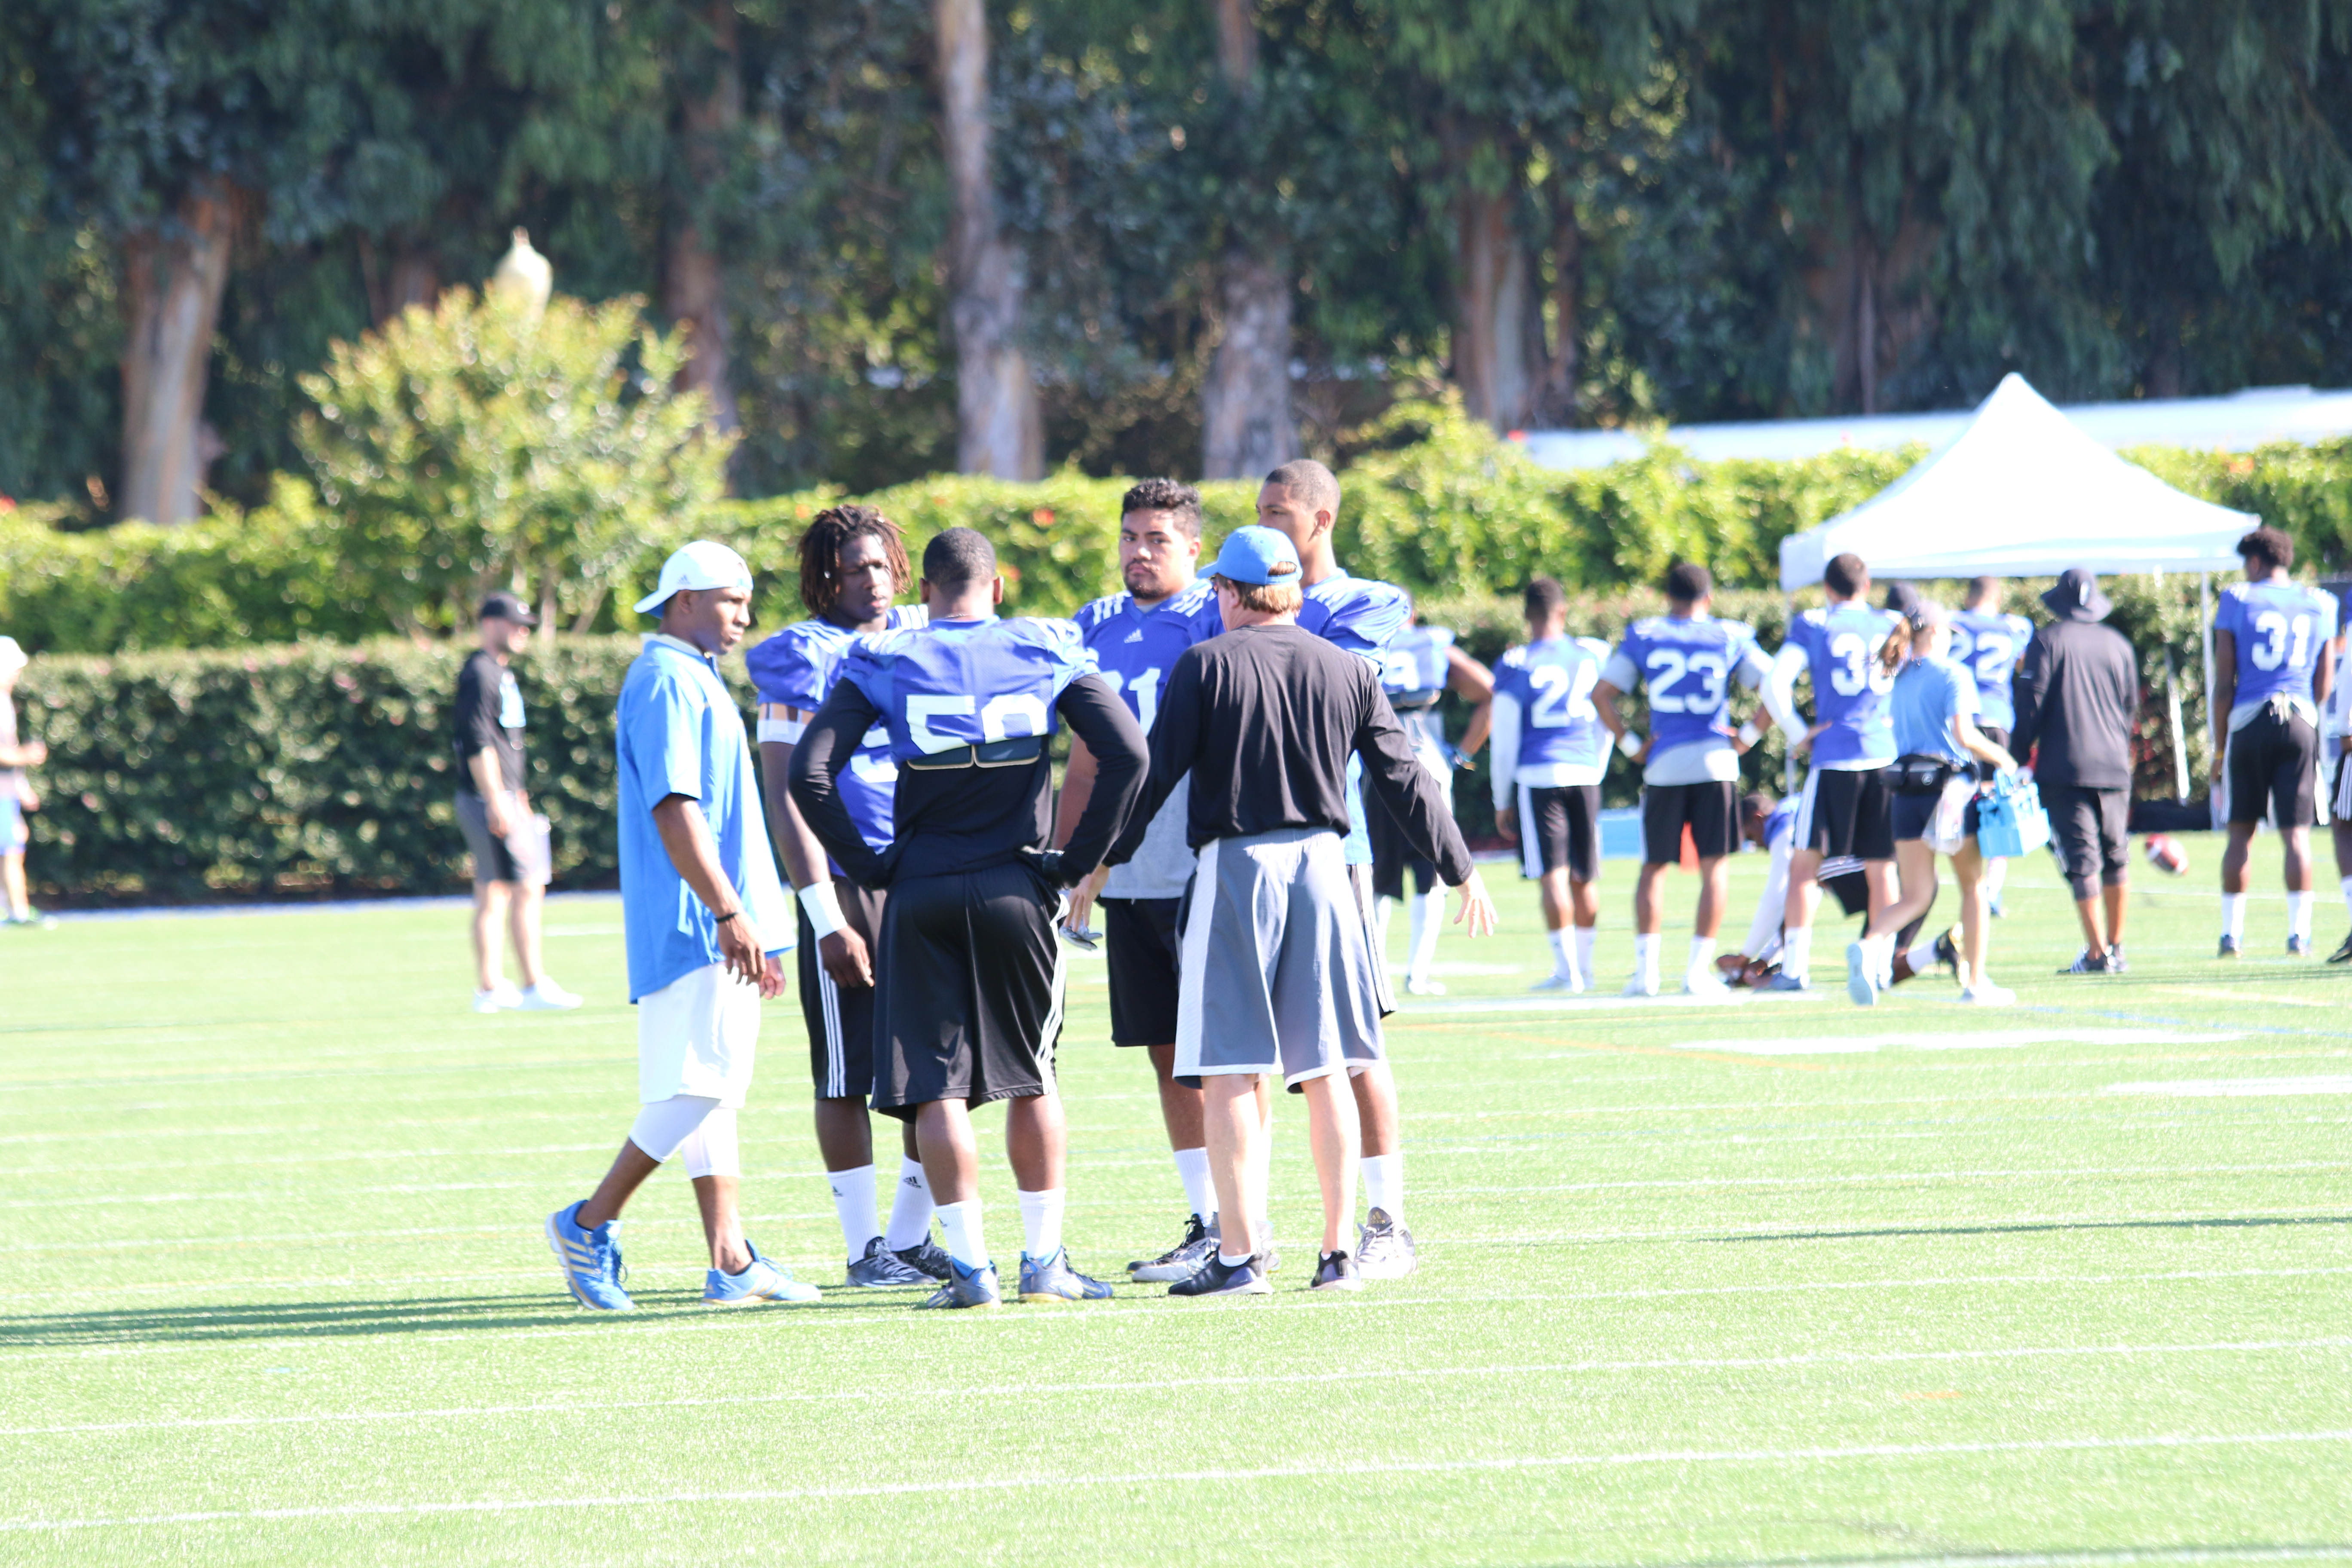 Tom Bradley coaching Tak McKinley and several other defensive players.